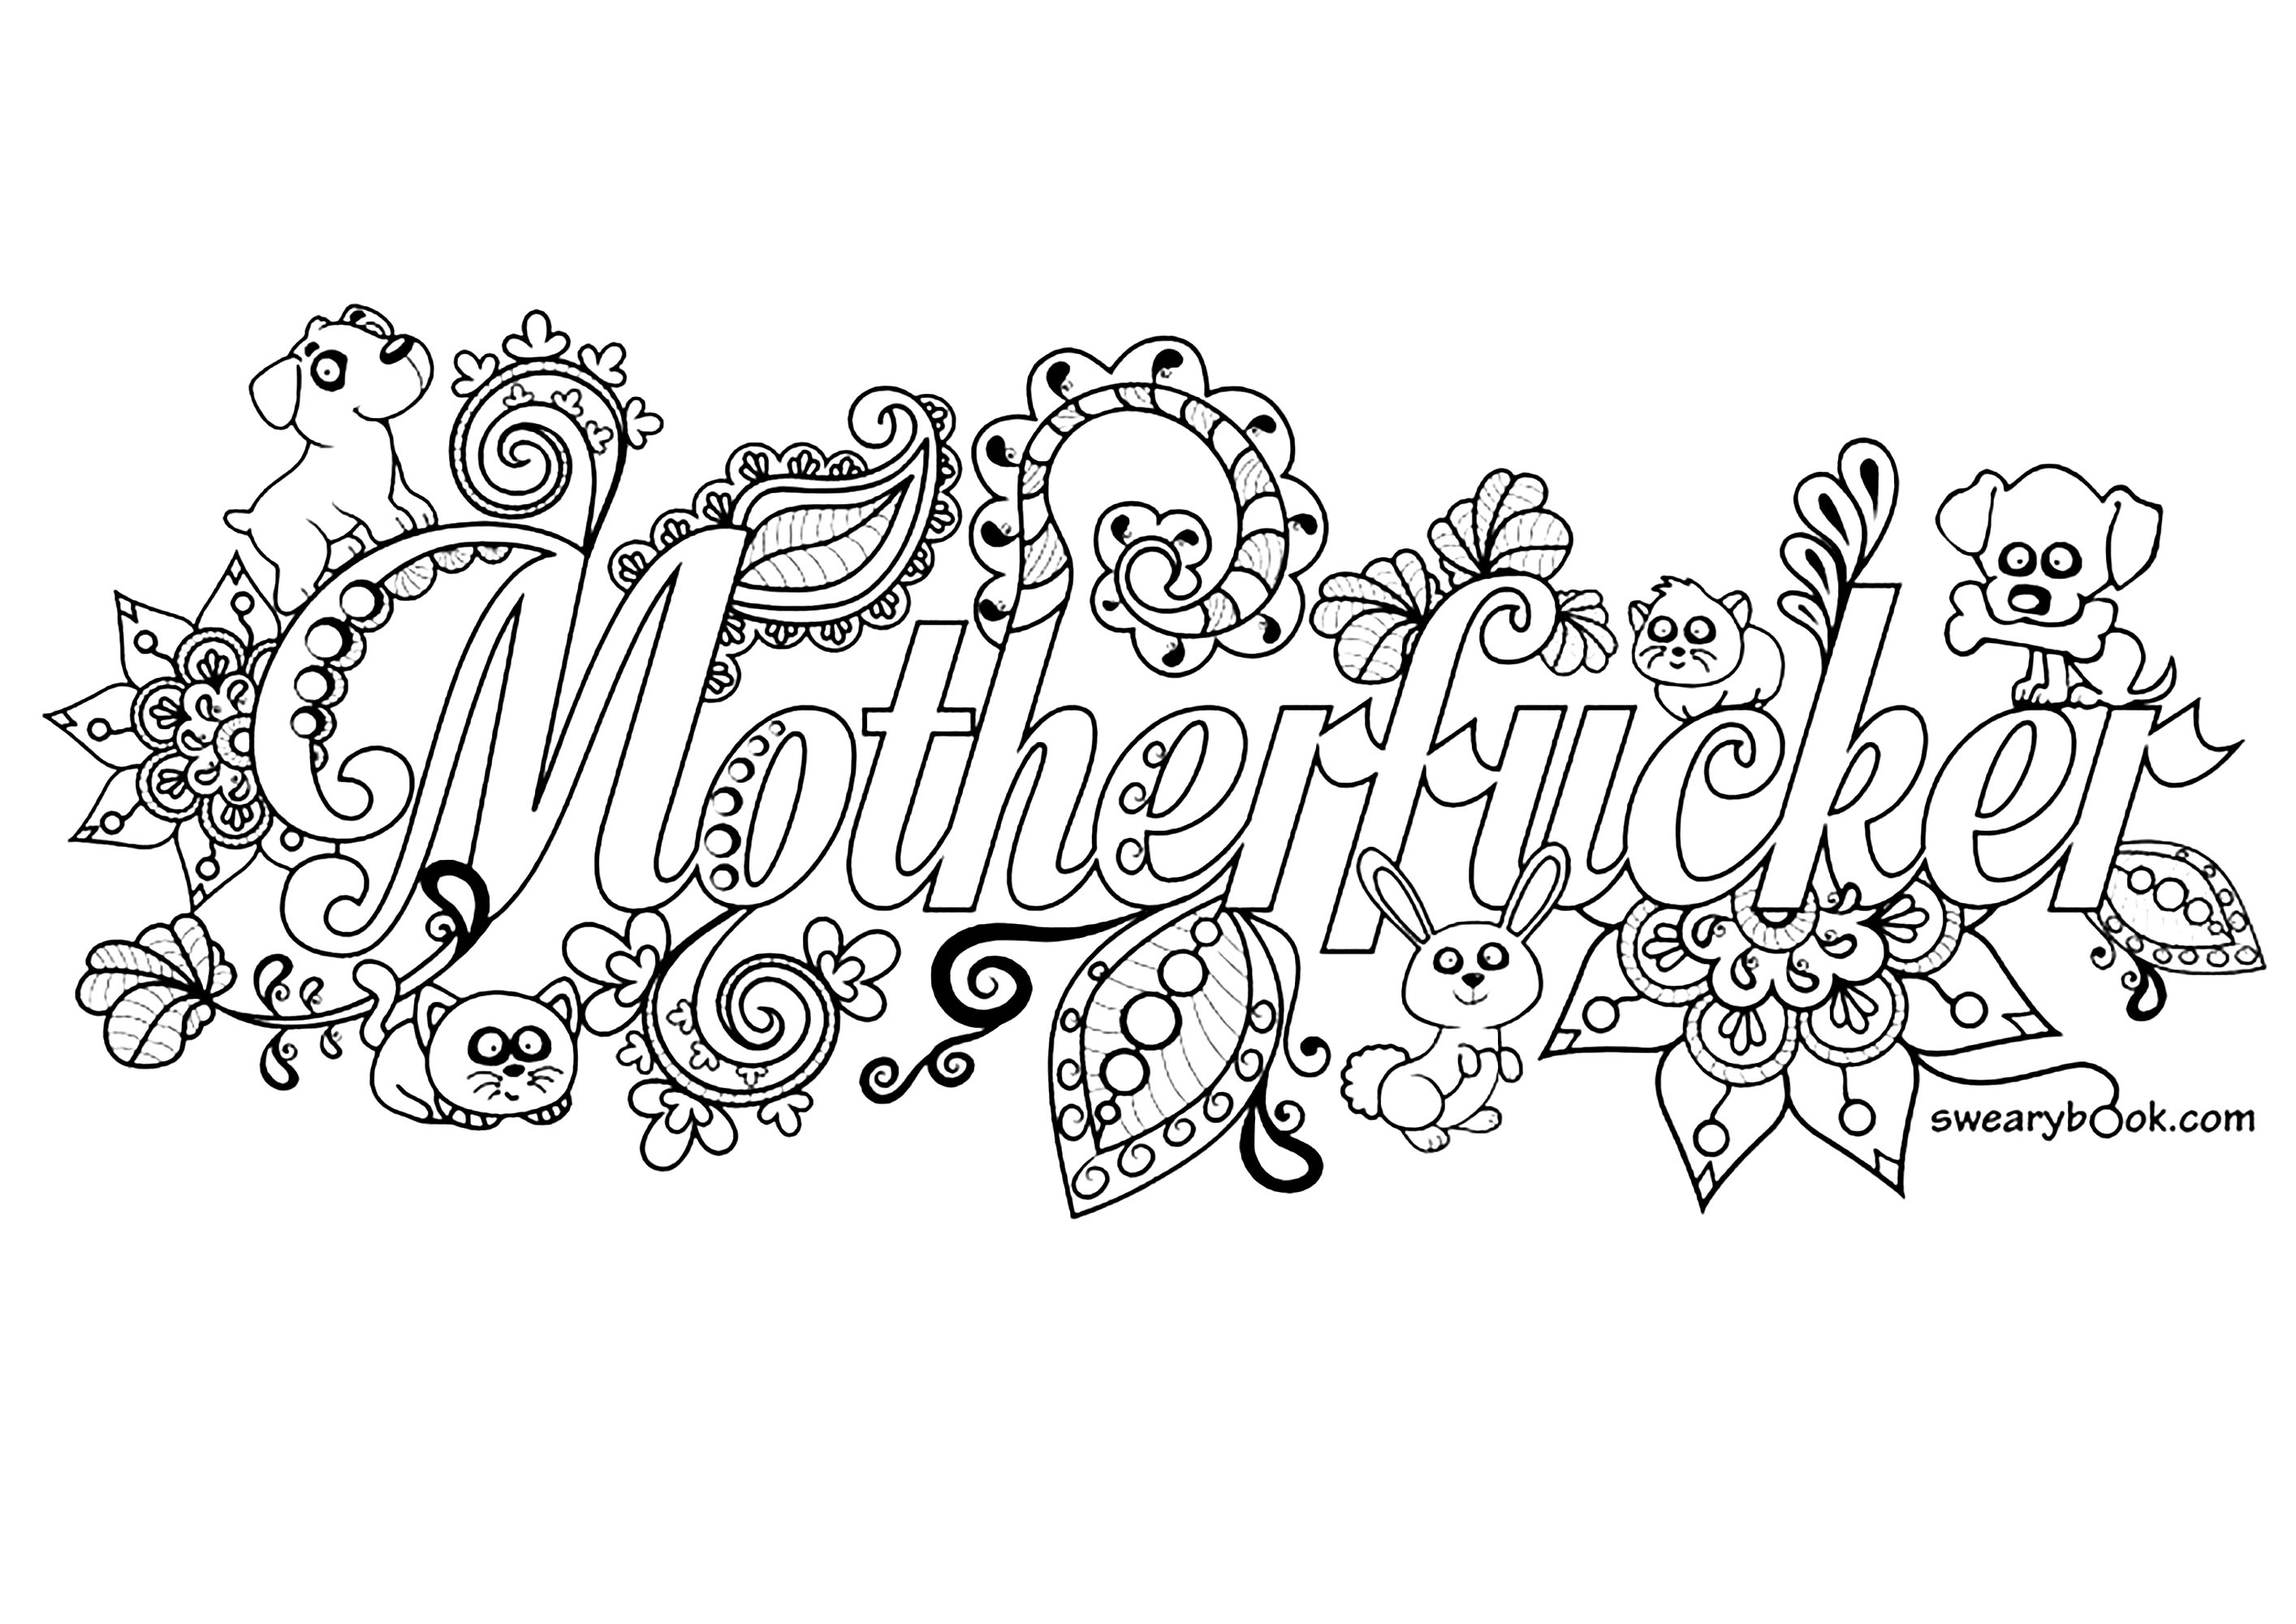 Motherfucker Swear Word Coloring Page Swear Word Adult Coloring